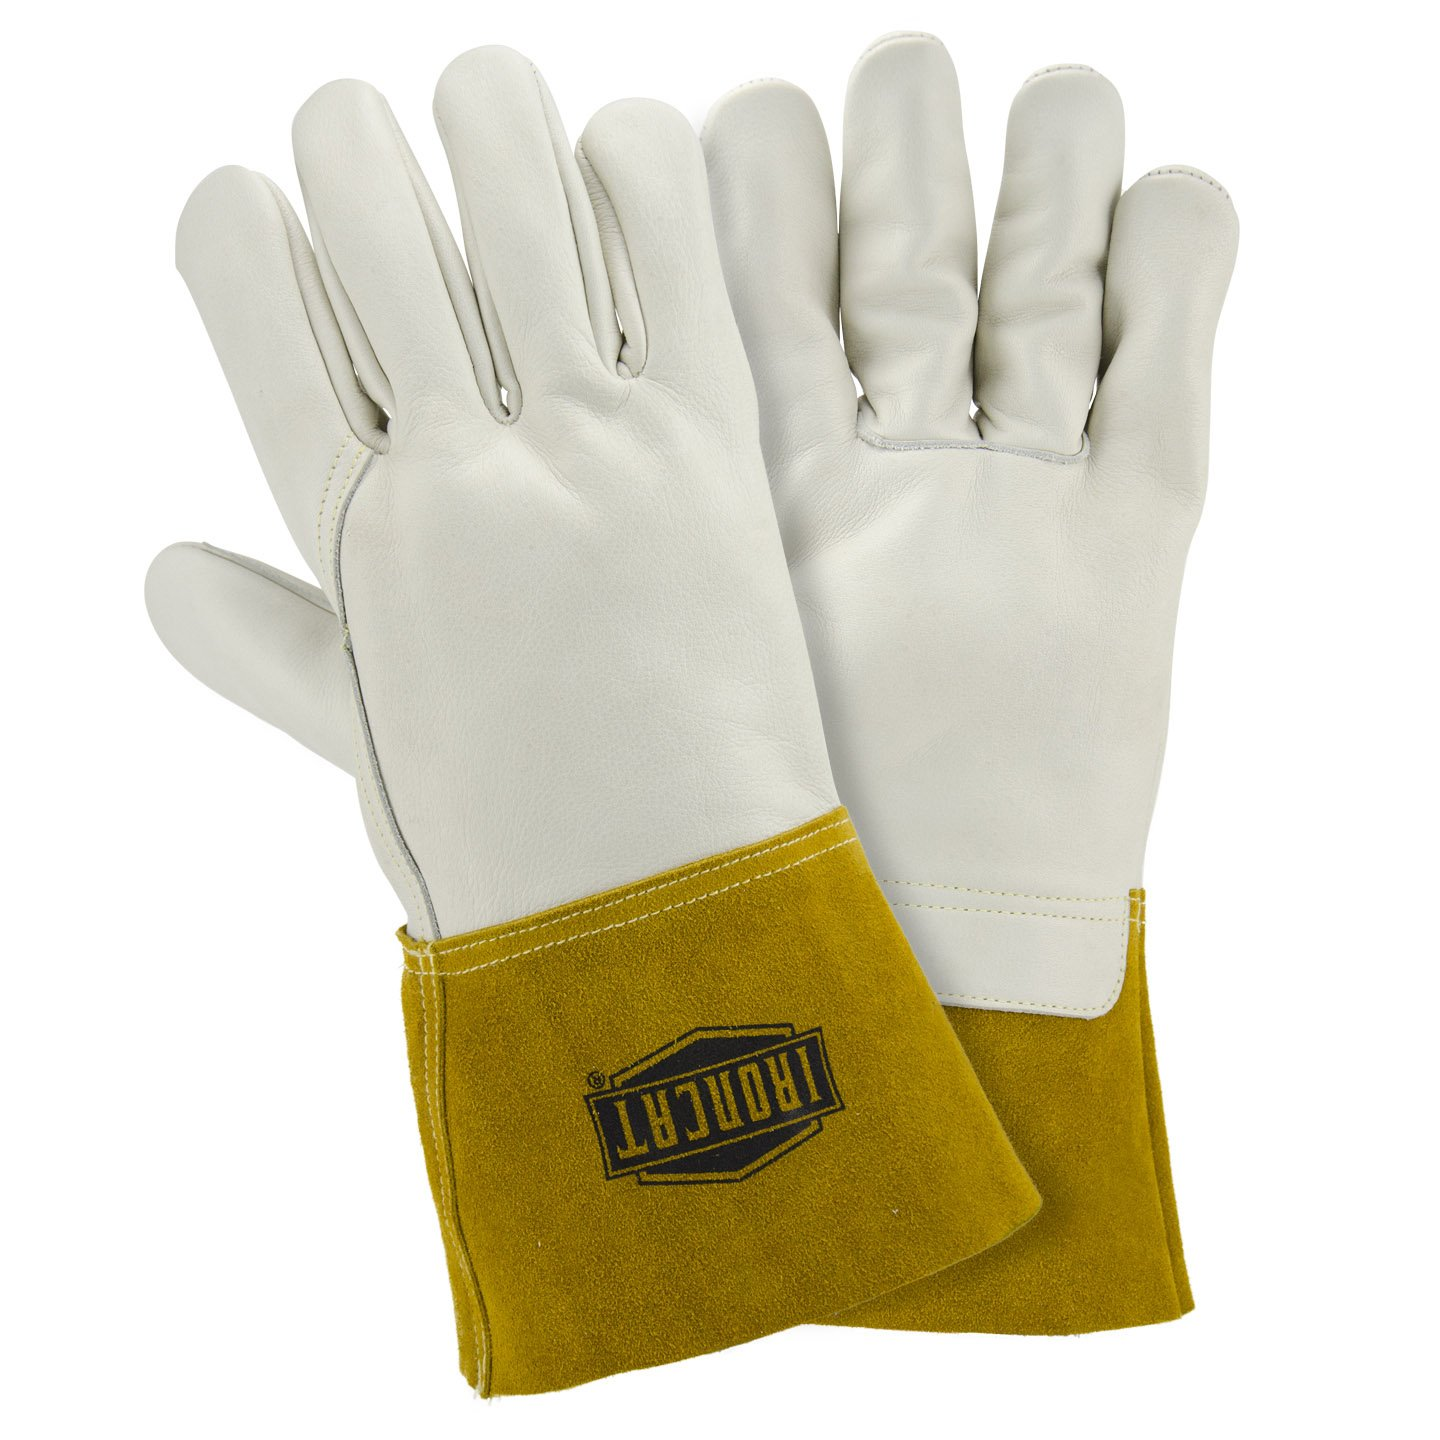 IRONCAT 6010/XL Heavyweight Top Grain Cowhide MIG Welding Gloves, White, XL (Pack of 12 Pairs)